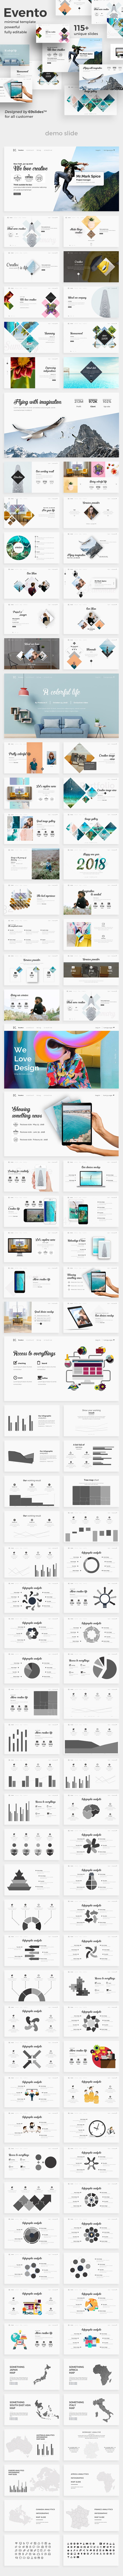 Evento Creative Keynote Template - Creative Keynote Templates